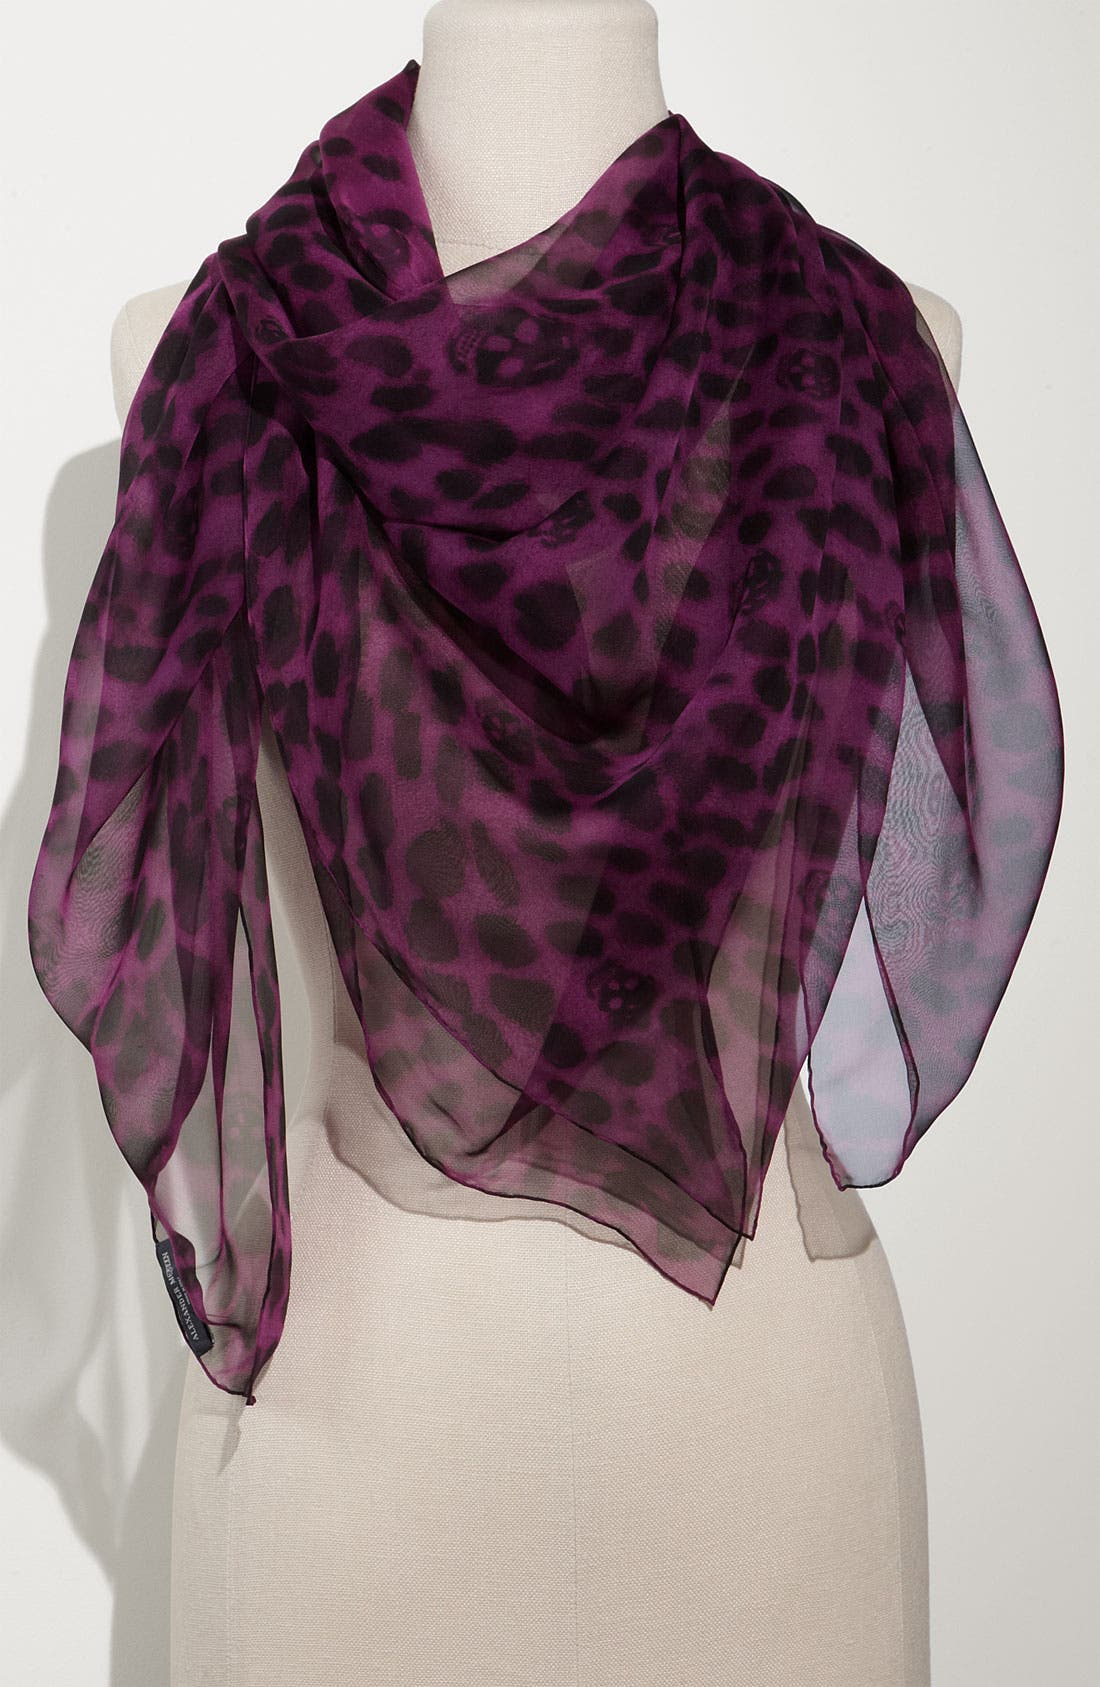 Alternate Image 1 Selected - Alexander McQueen 'Leopard Skull' Chiffon Scarf